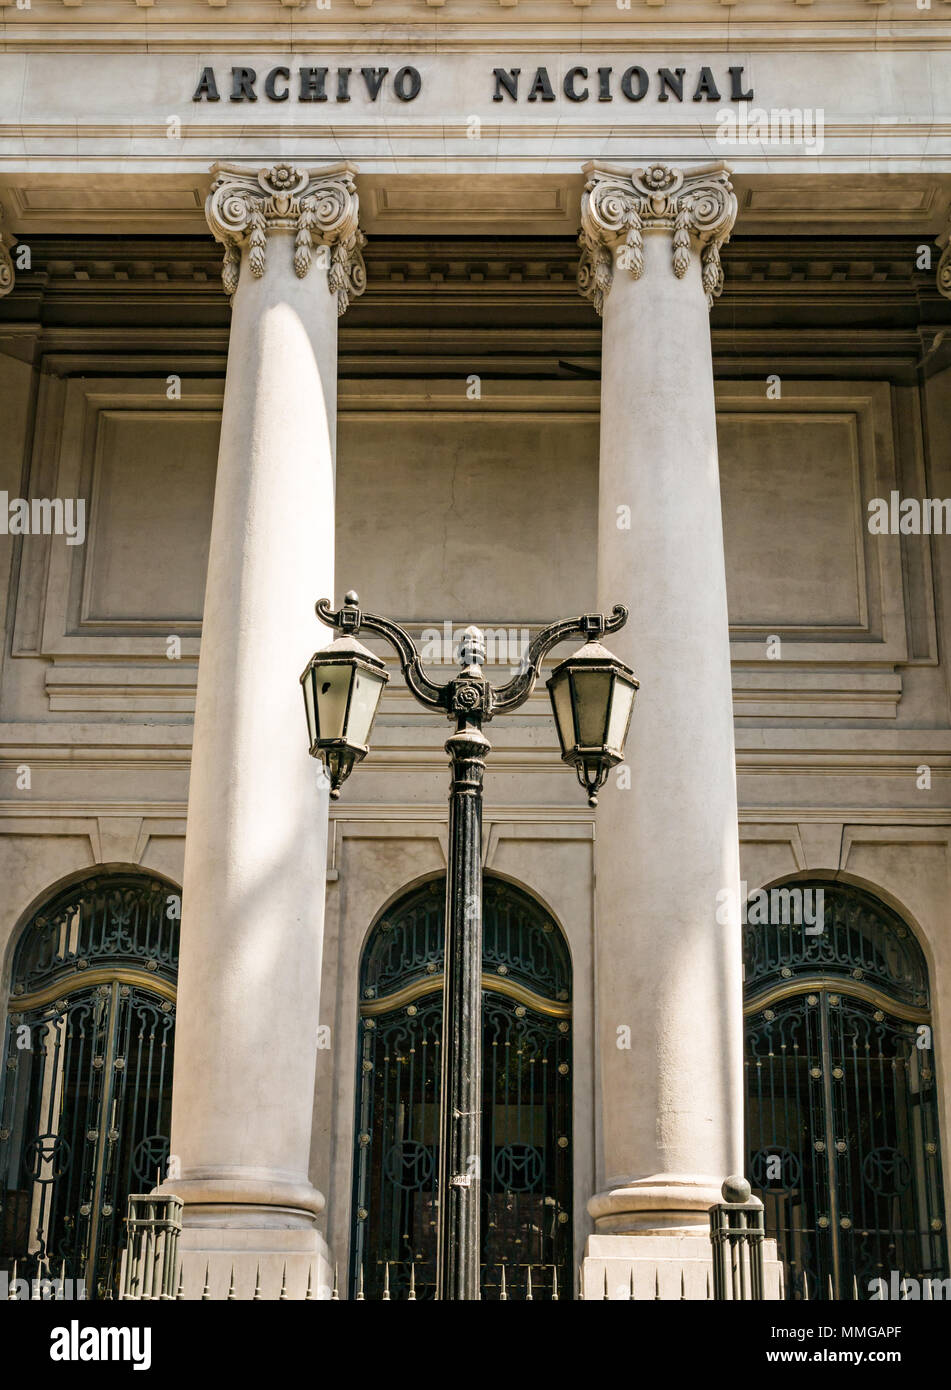 Front of the collonaded National Archive building of the National Library with old fashioned streetlights, Santiago, Chile, South America Stock Photo